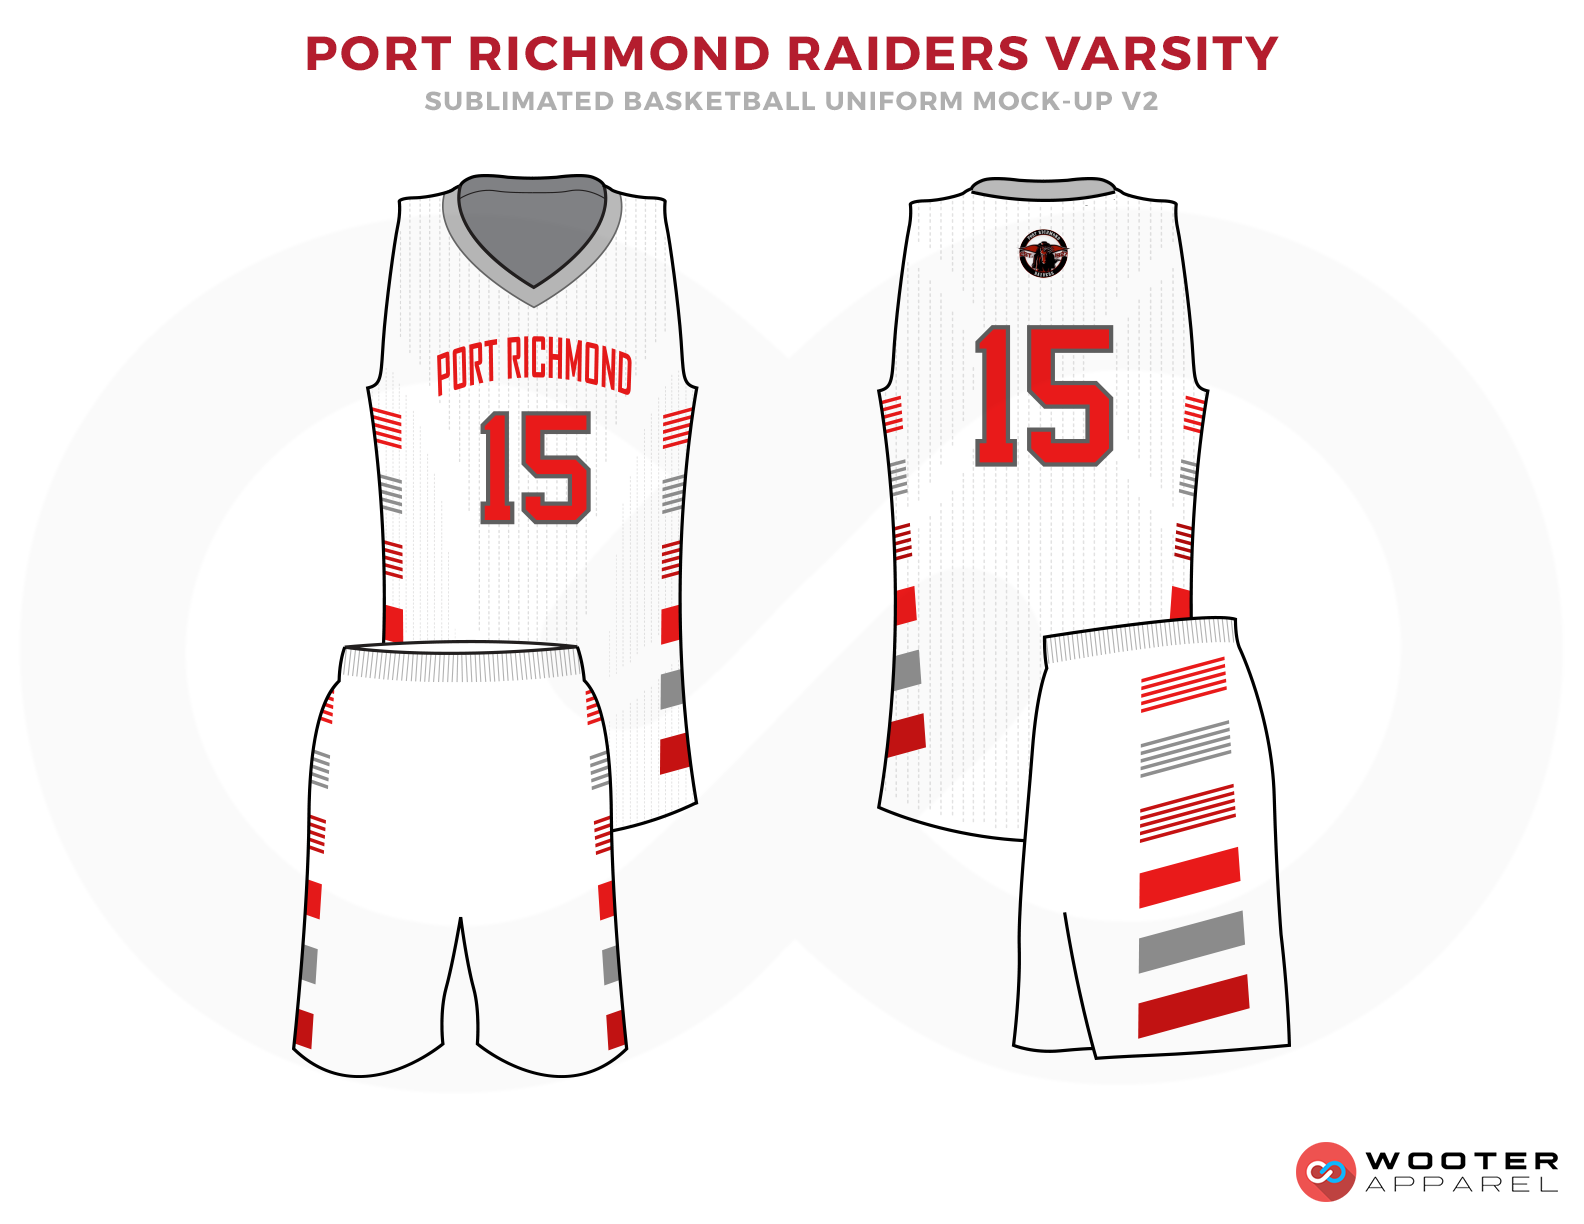 PORT RICHMOND RAIDERS VERSITY White Grey and Red Basketball Uniforms, Jersey and Shorts